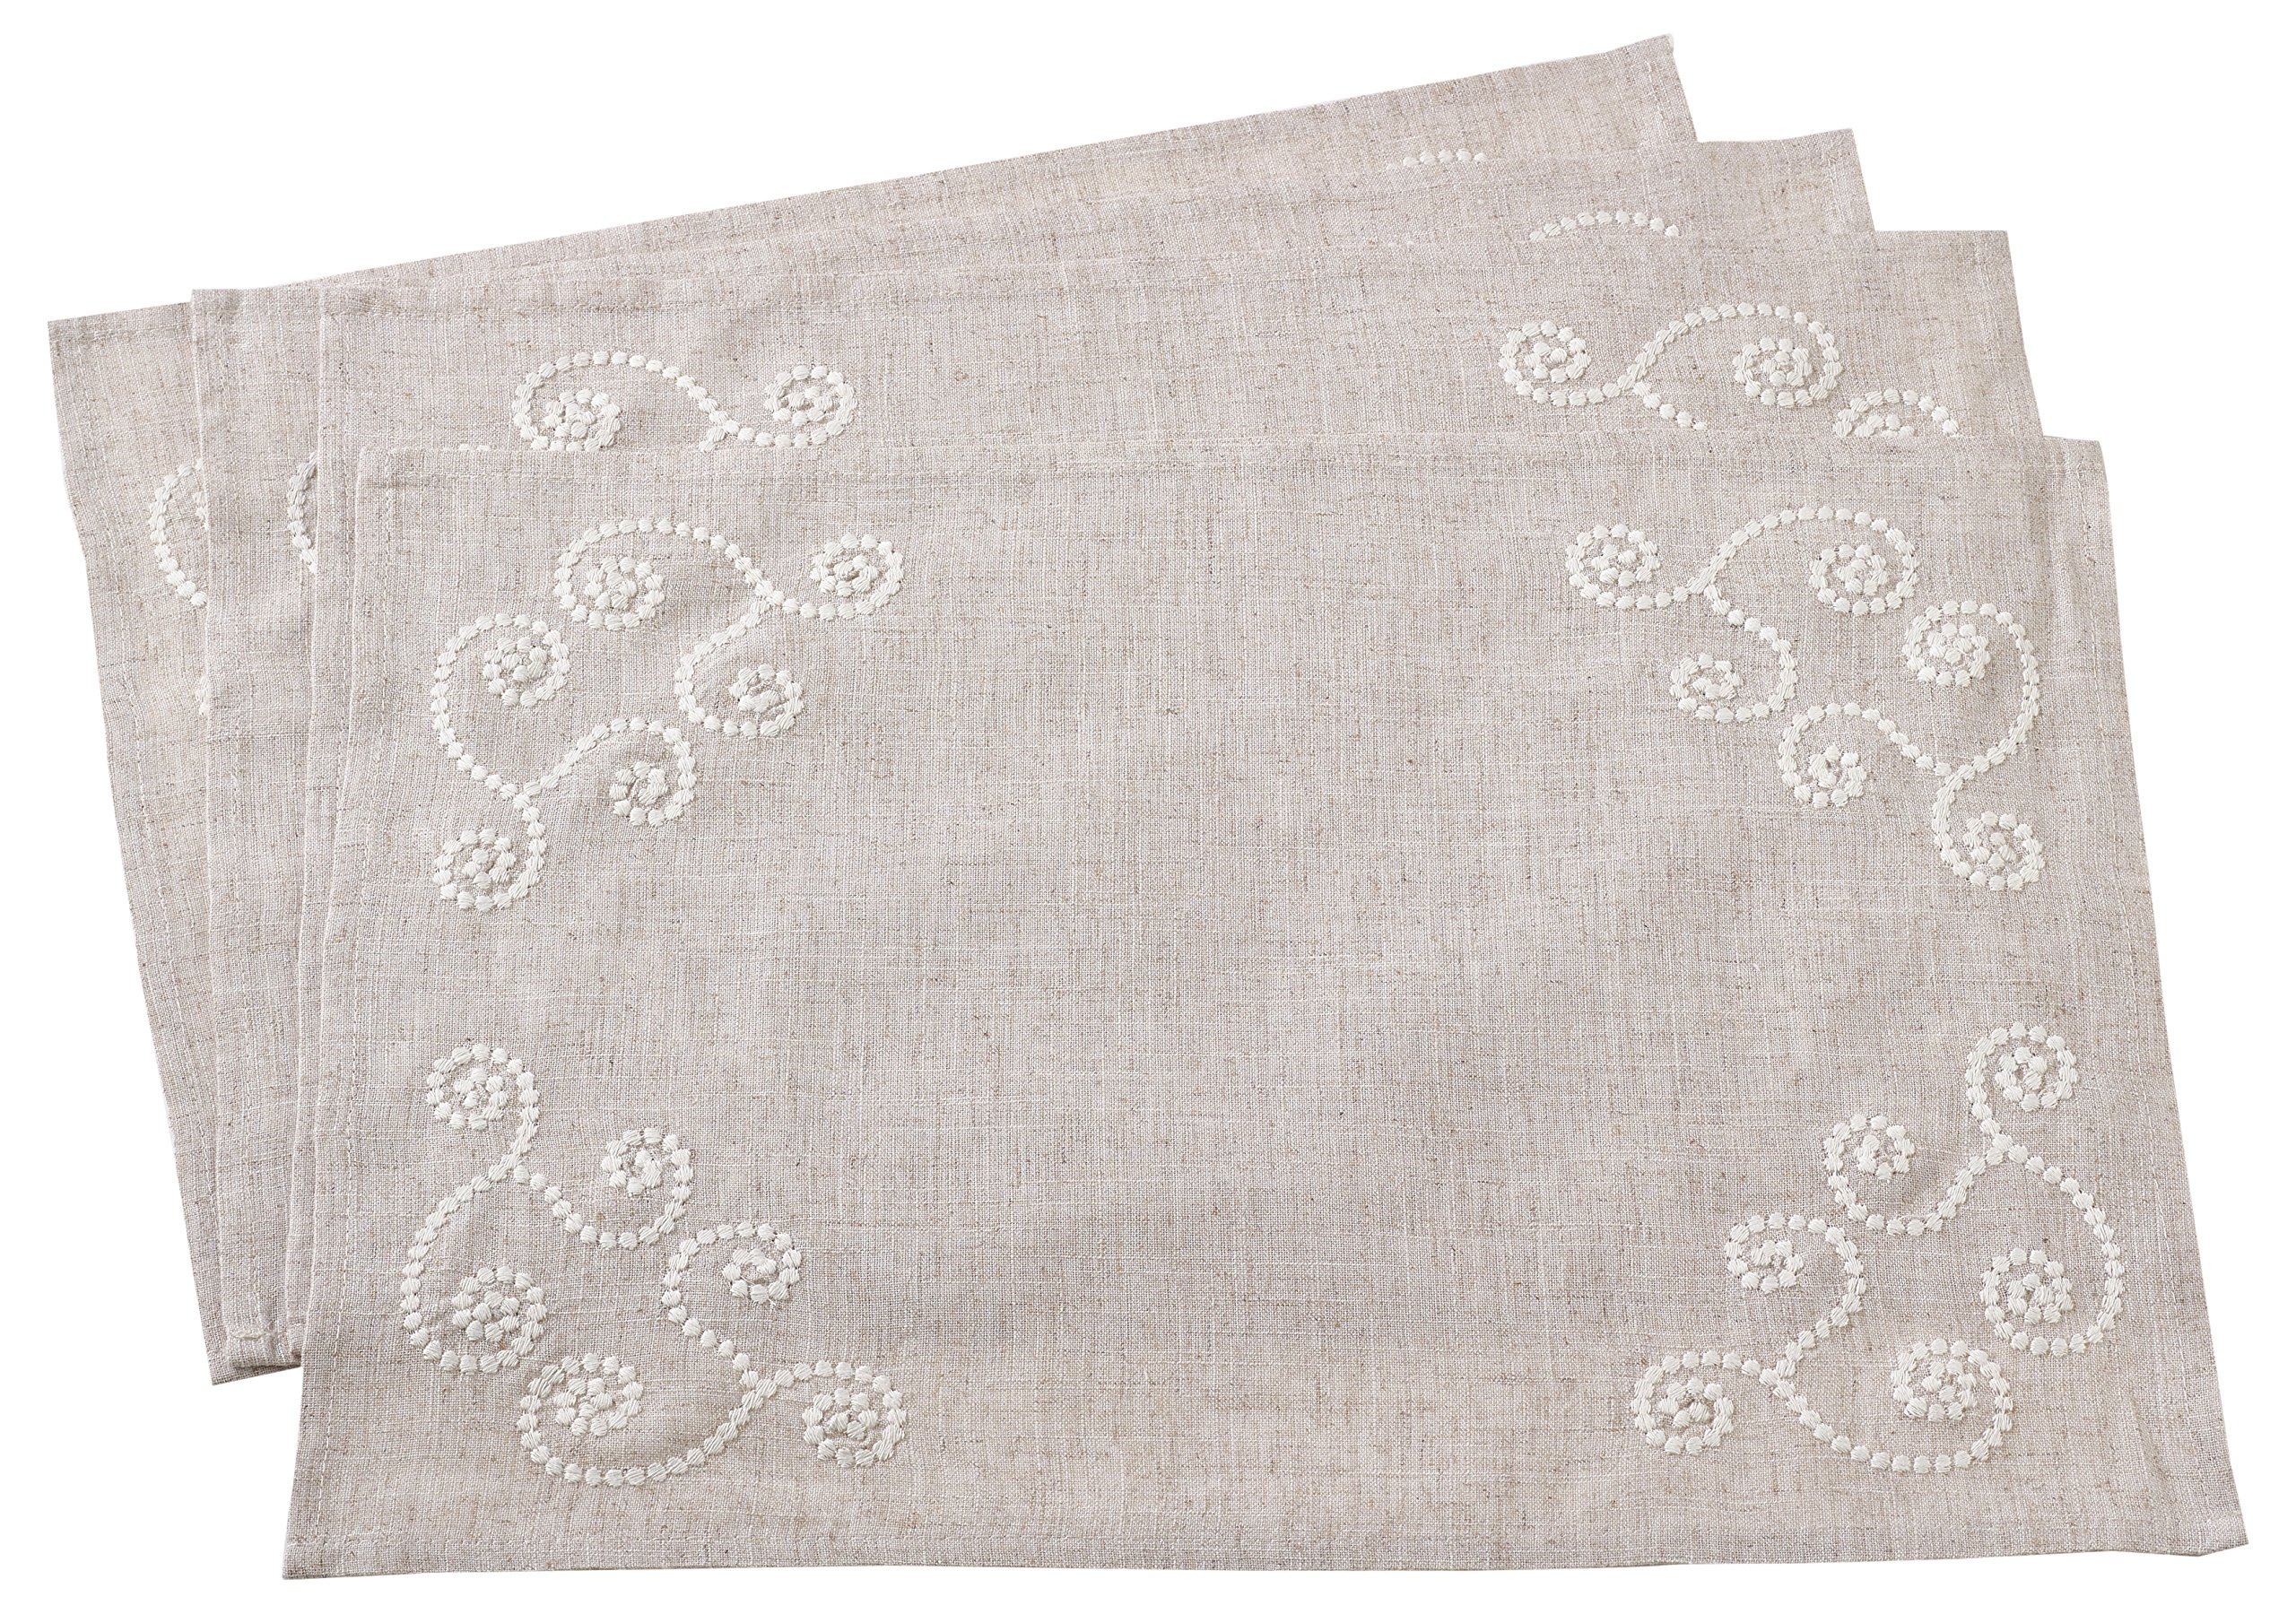 "SARO LIFESTYLE Swirl Embroidered Placemat/001.N1420B, 14"" x 20"", Natural - 80% polyester 20% linen 14"" x 20"" - sold in a set of 4 Machine washable - placemats, kitchen-dining-room-table-linens, kitchen-dining-room - A1T7vBWl9EL -"